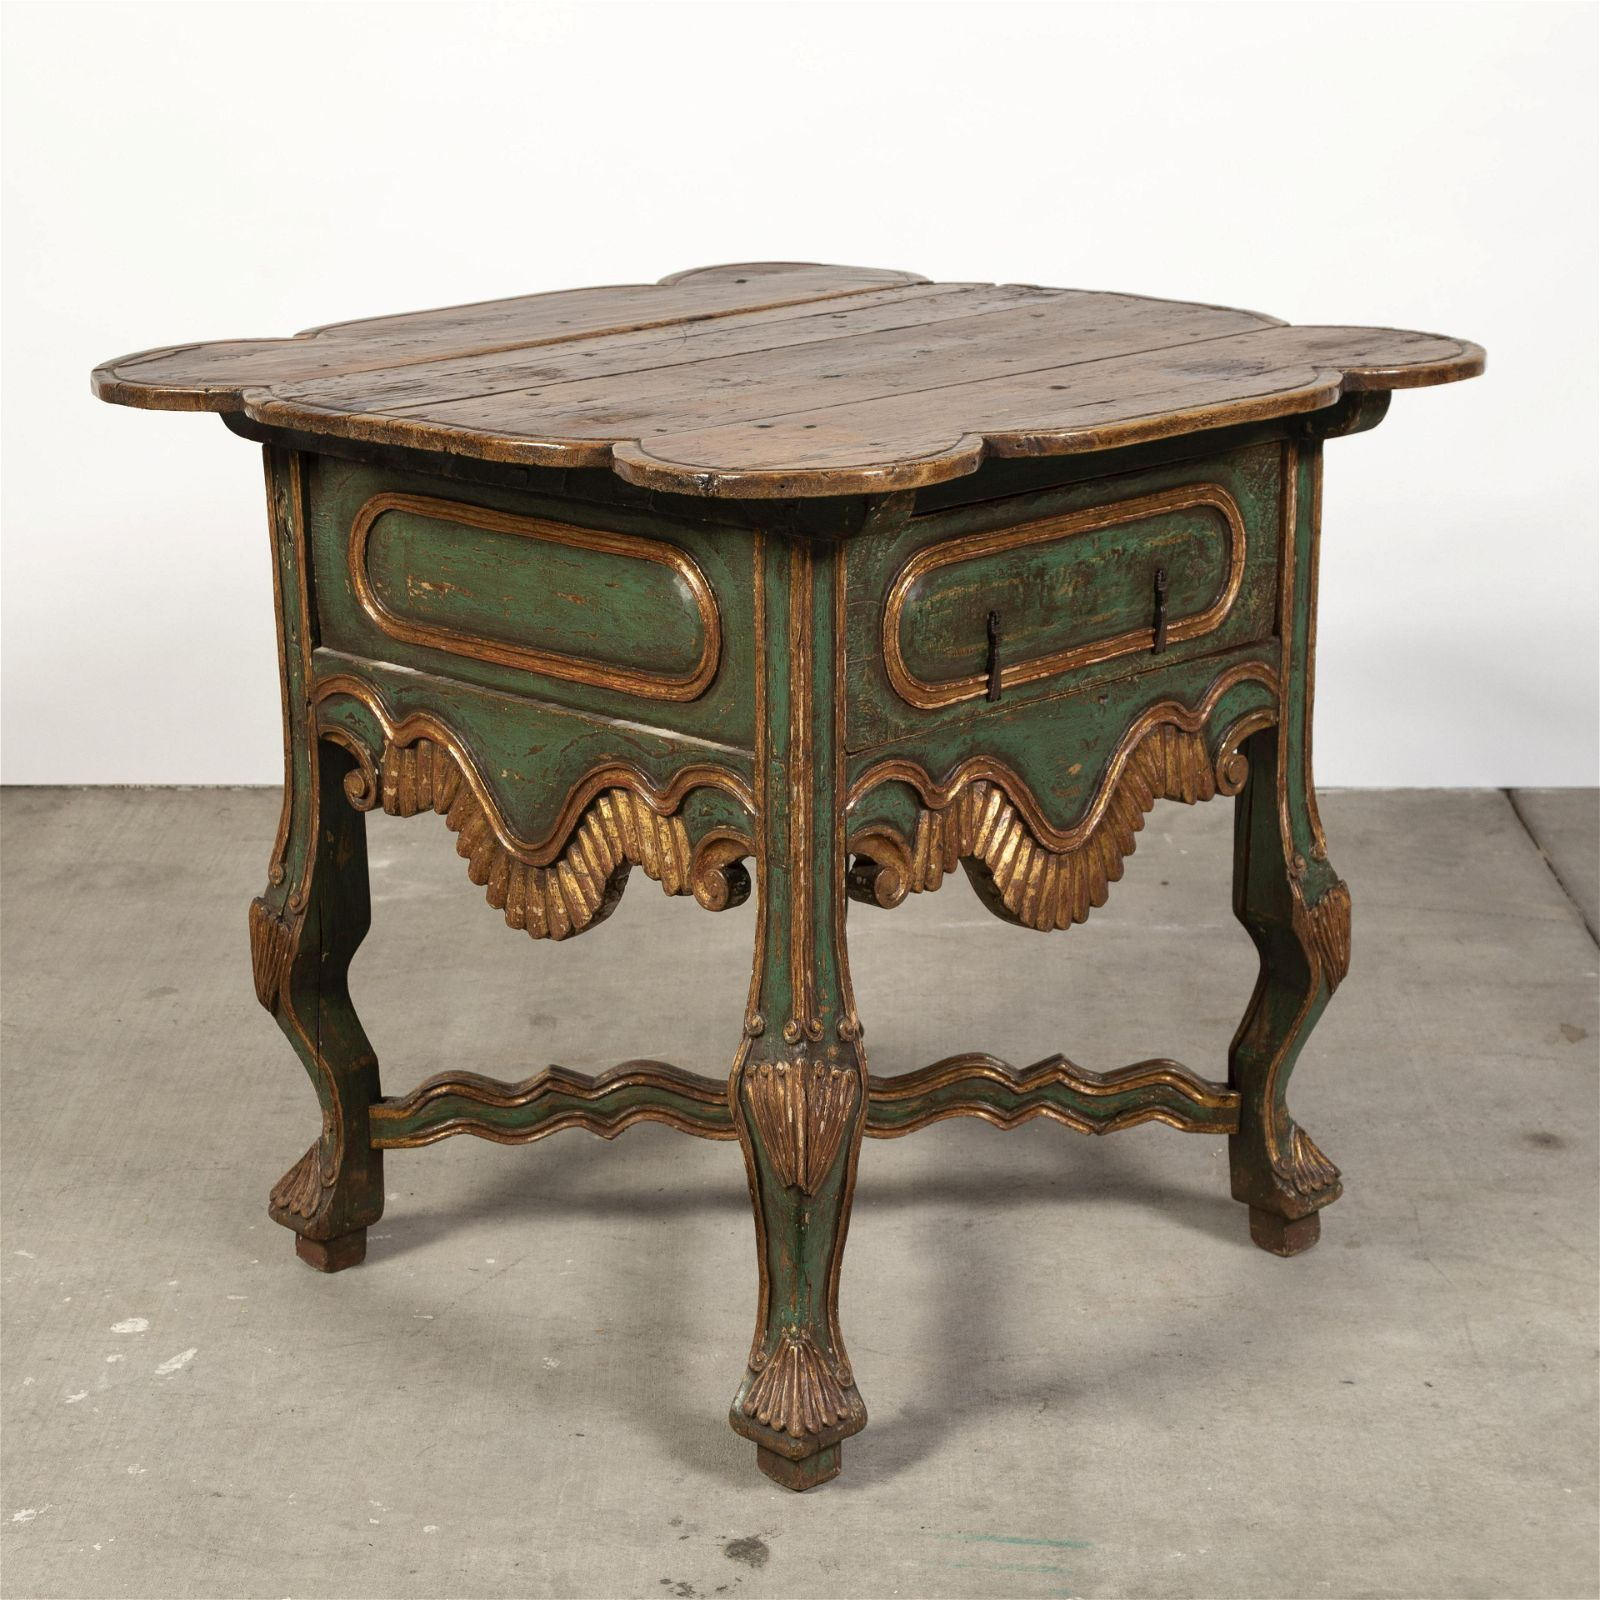 Spanish Colonial, Peru, Painted and Gilt Table